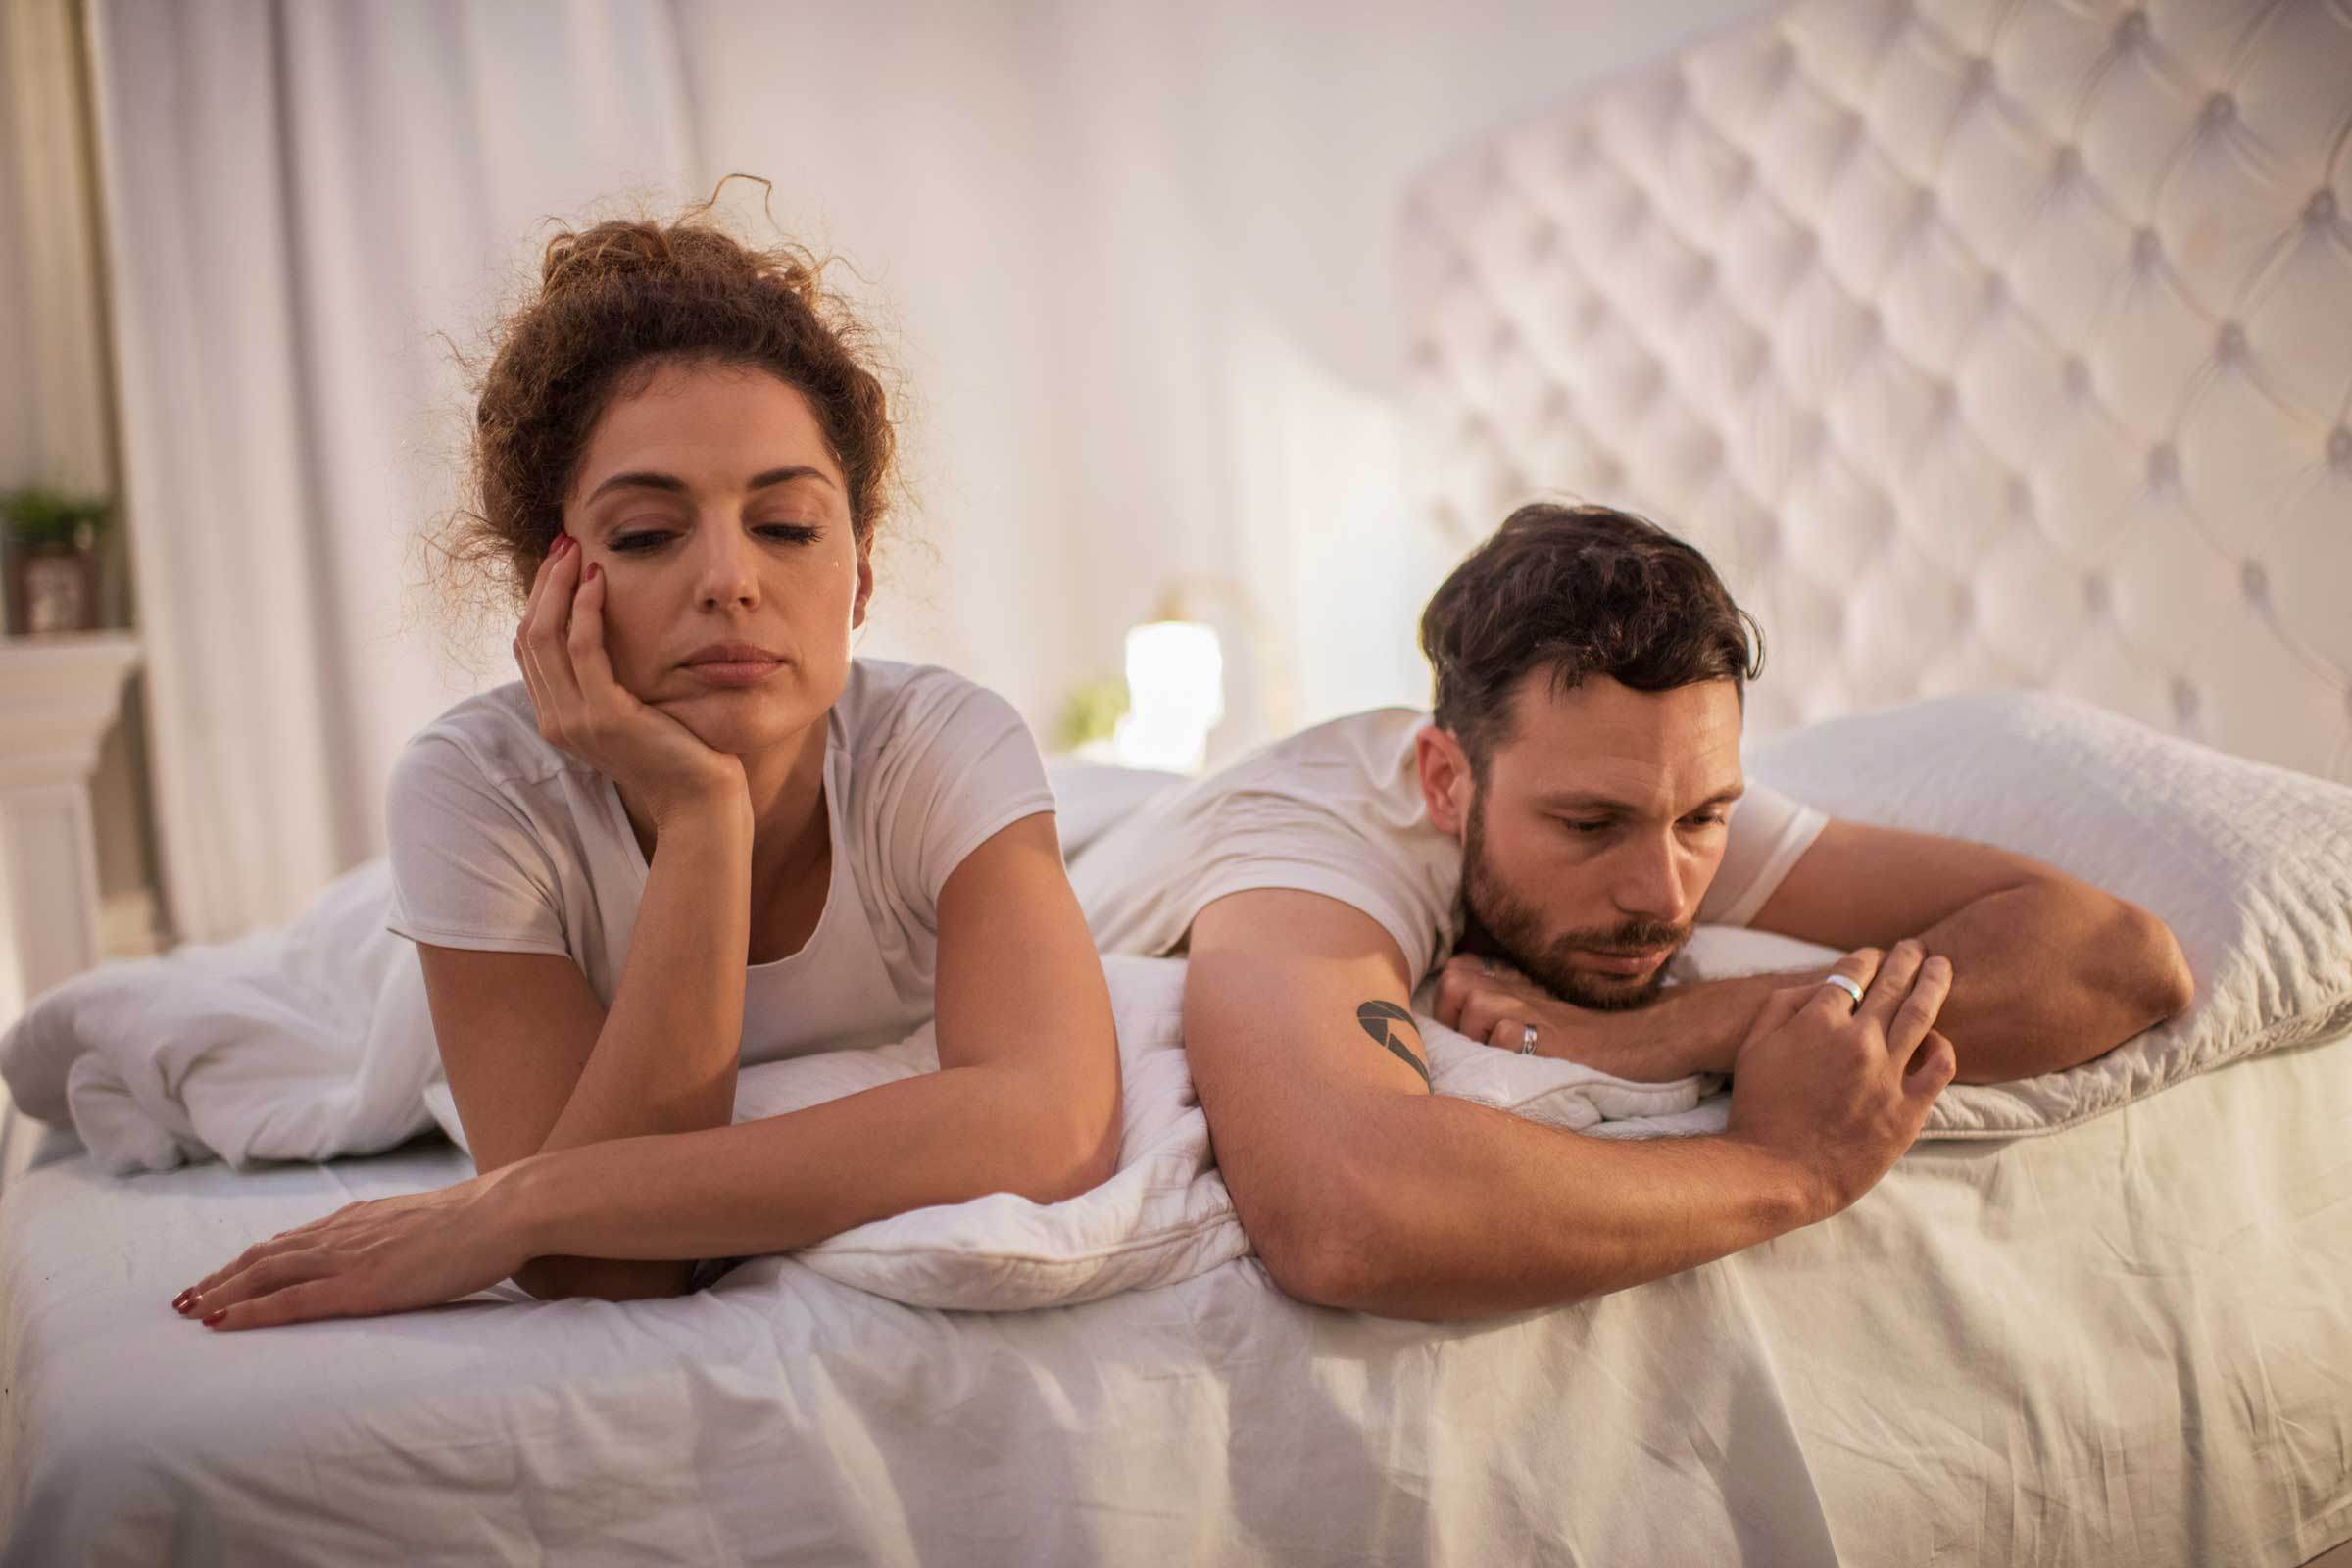 Things-You-Should-Never-Do-After-Your-Partner-Cheats_Get-Even_87353243_BraunS